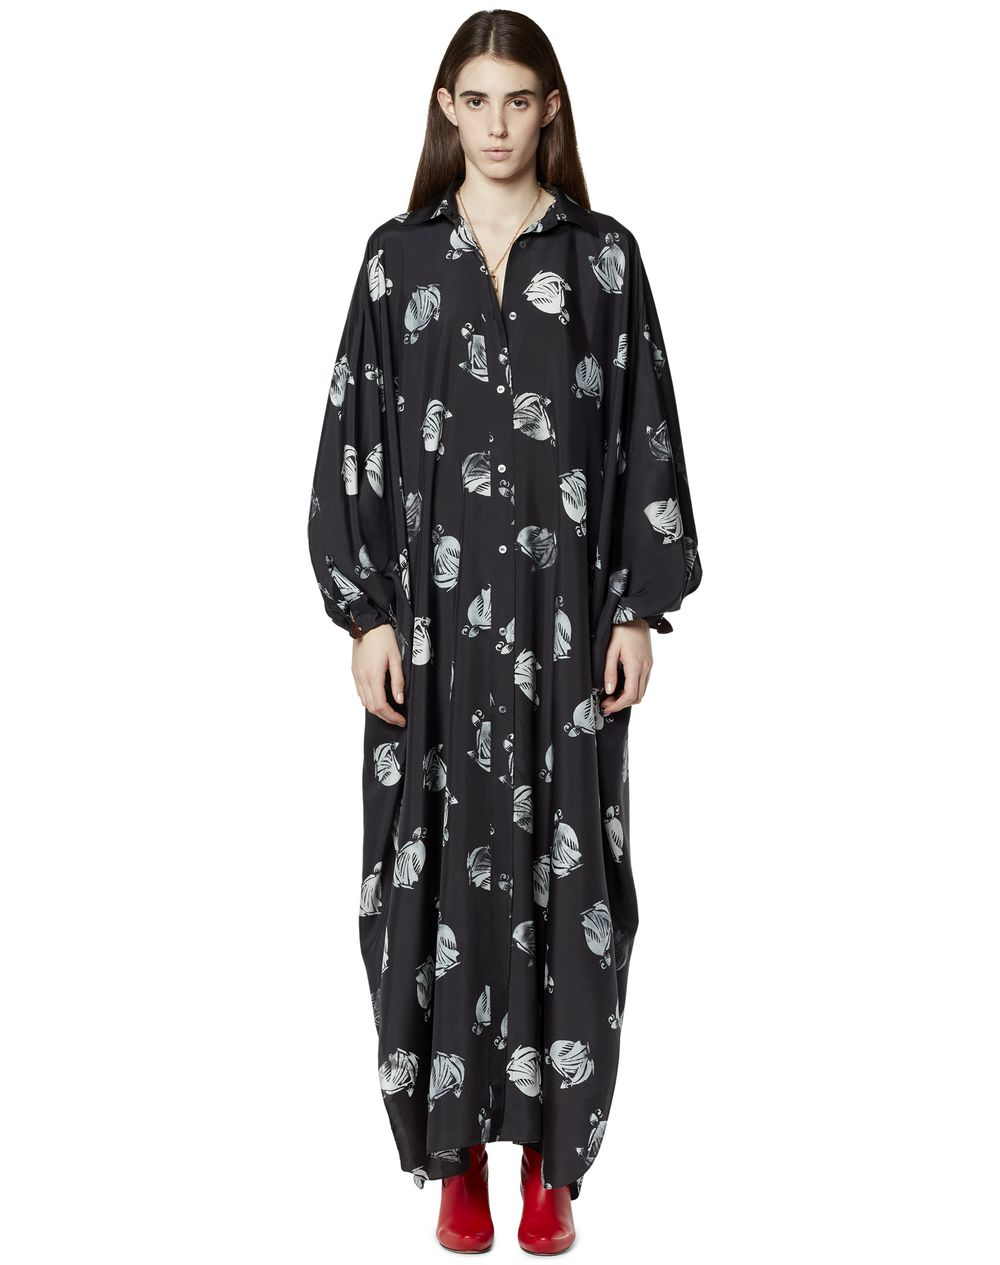 OVERSIZED PRINTED SHIRT DRESS - Lanvin